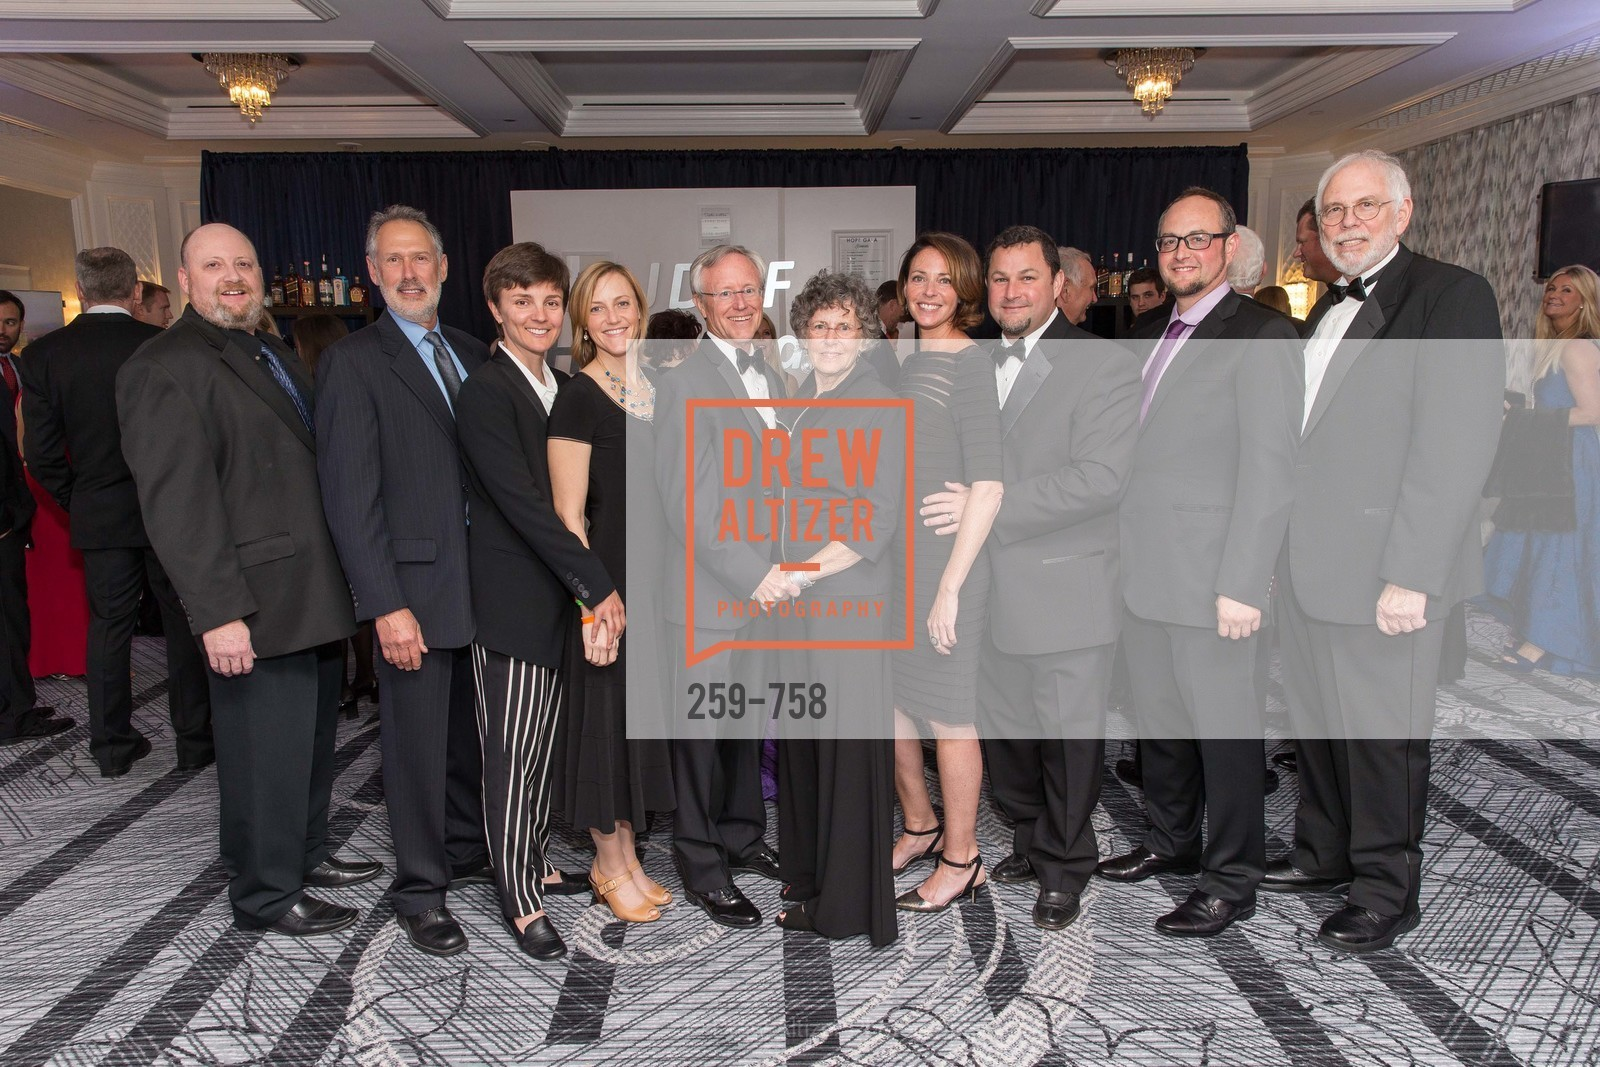 Matthew Cohen, David Shatkin, Katerina Blinova, Emily Coles, Dayton Coles, Sheri Coles, Jessica Berry, Mike Berry, Chip Kurtzman, JUVENILE DIABETES RESEARCH FOUNDATION  Hope Gala, US, May 30th, 2015,Drew Altizer, Drew Altizer Photography, full-service agency, private events, San Francisco photographer, photographer california